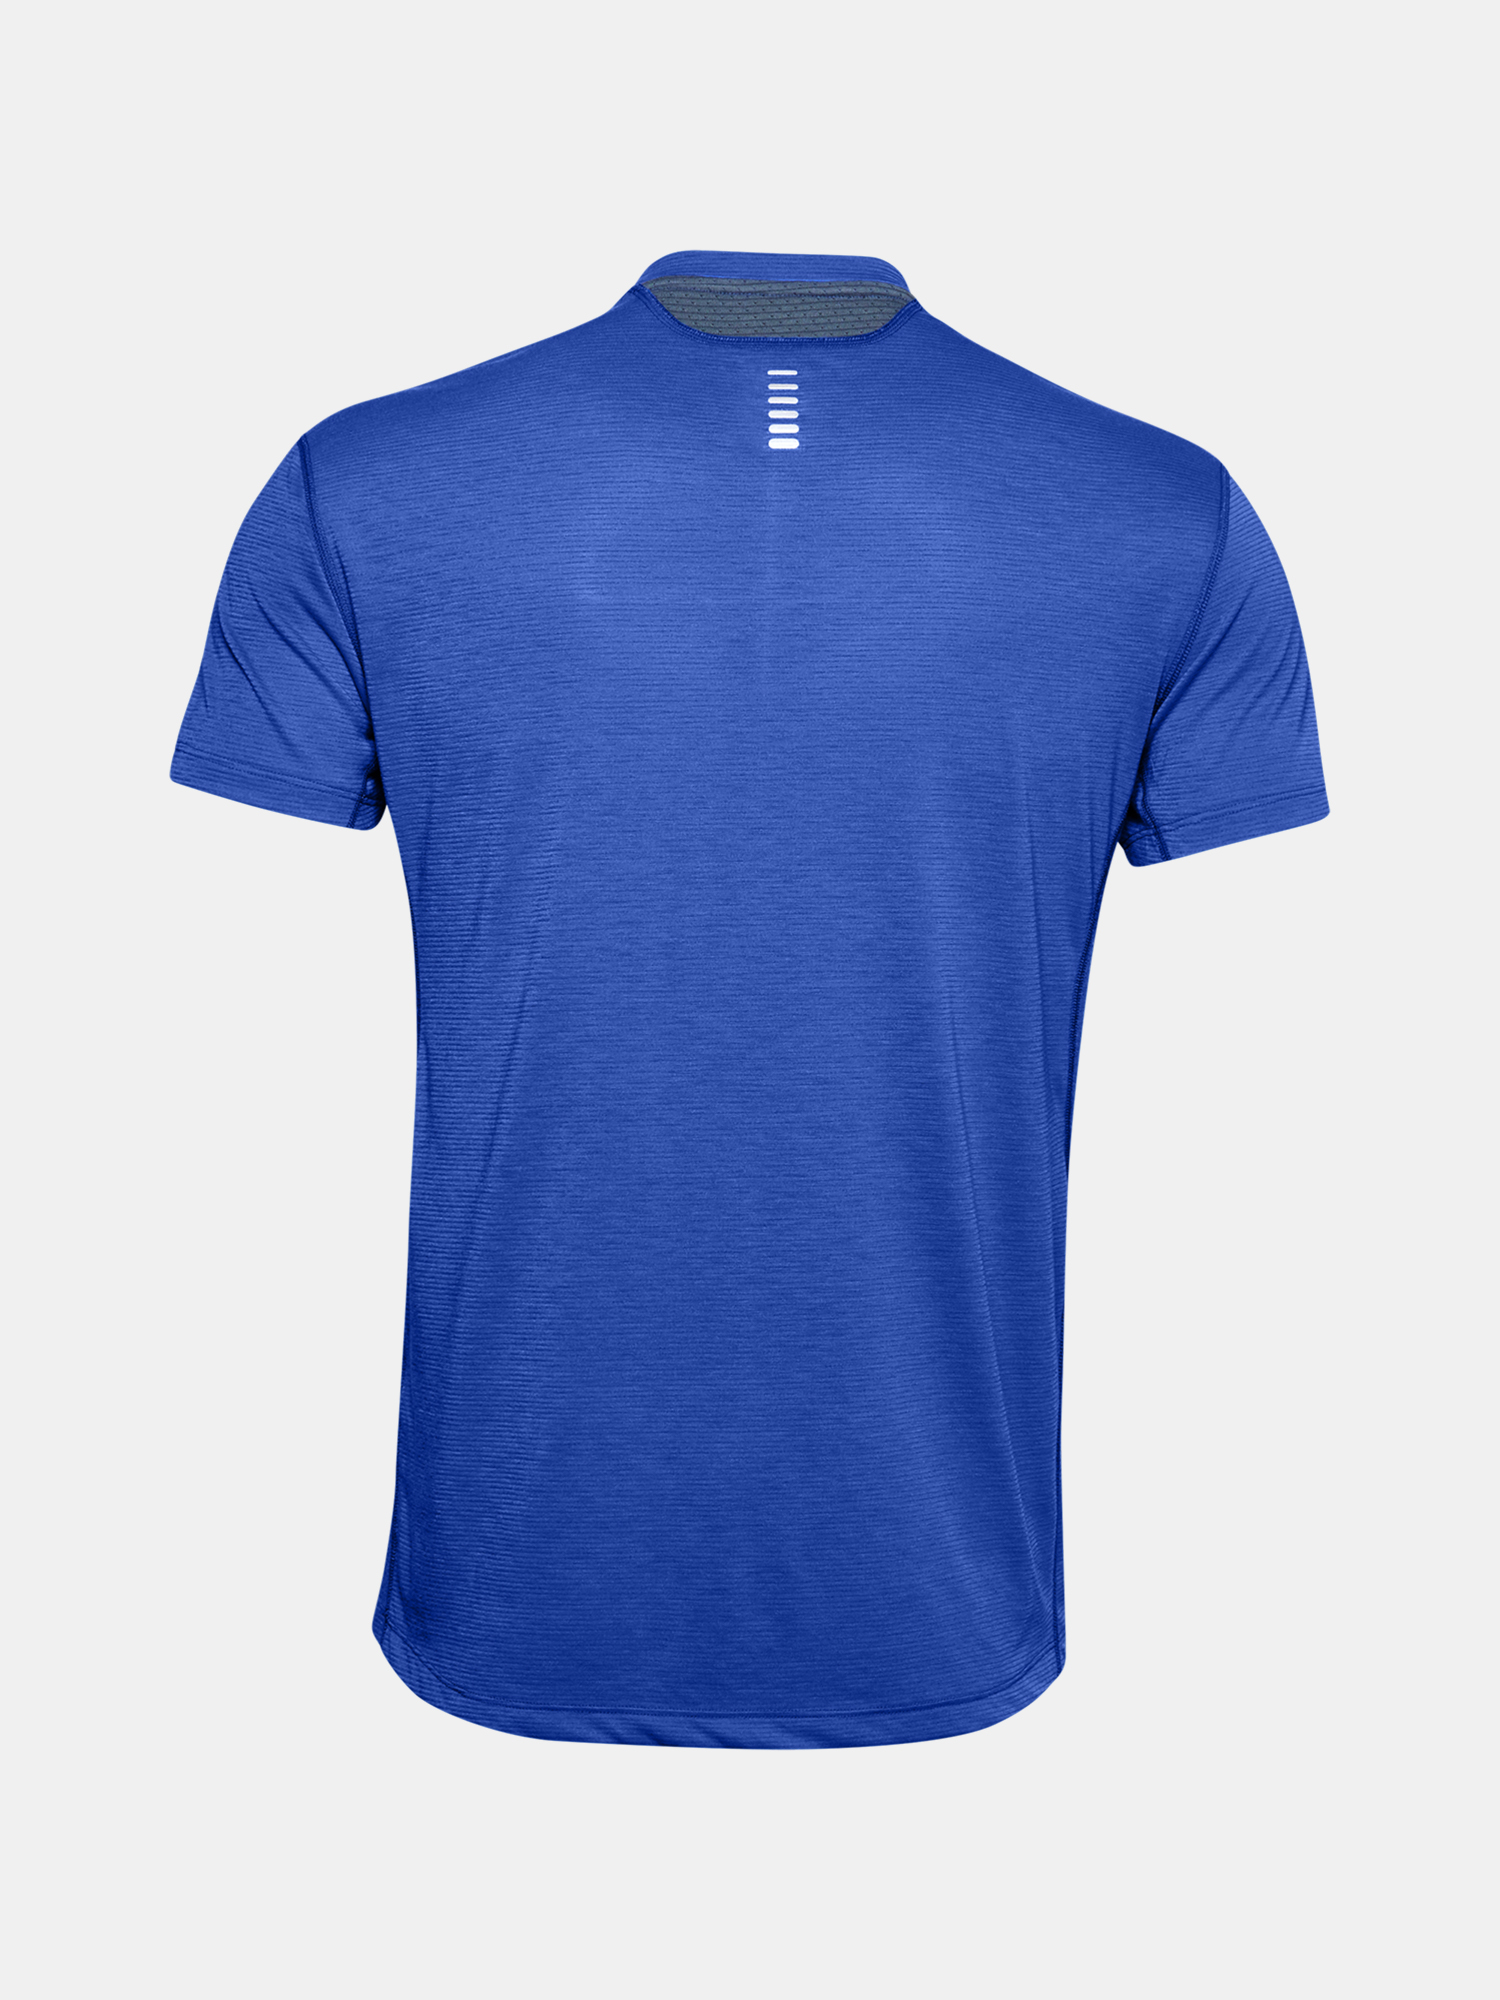 Tričko Under Armour STREAKER 2.0 SHORTSLEEVE-BLU (4)